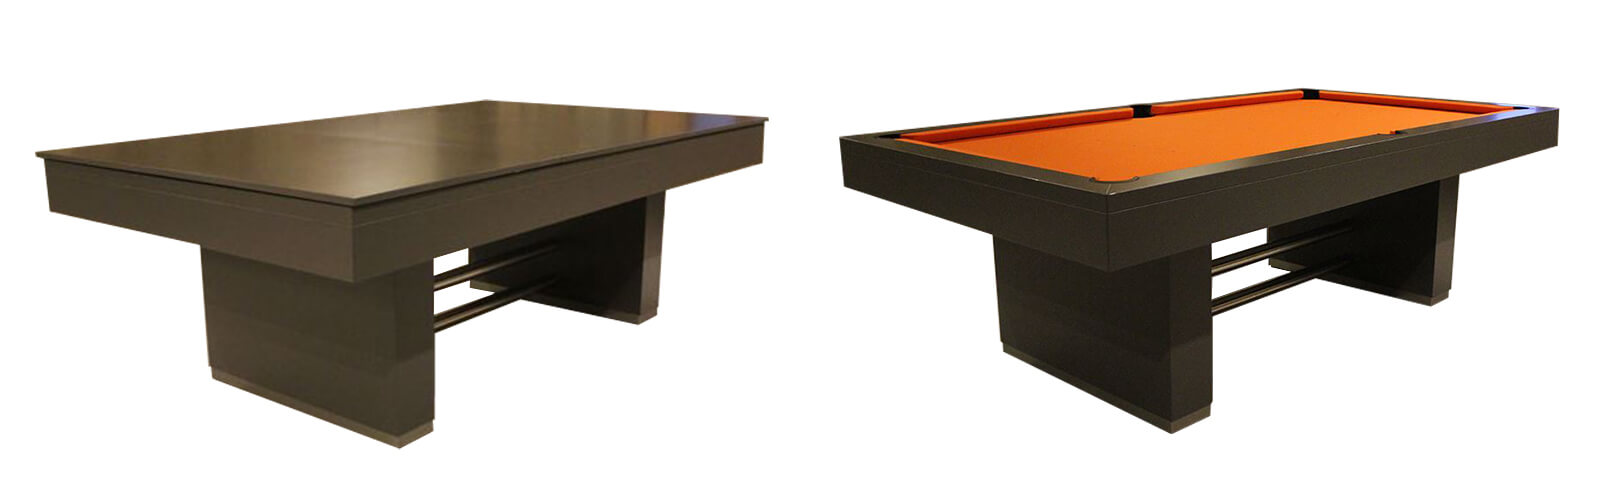 The Monaco 2 pool table with table top fitted